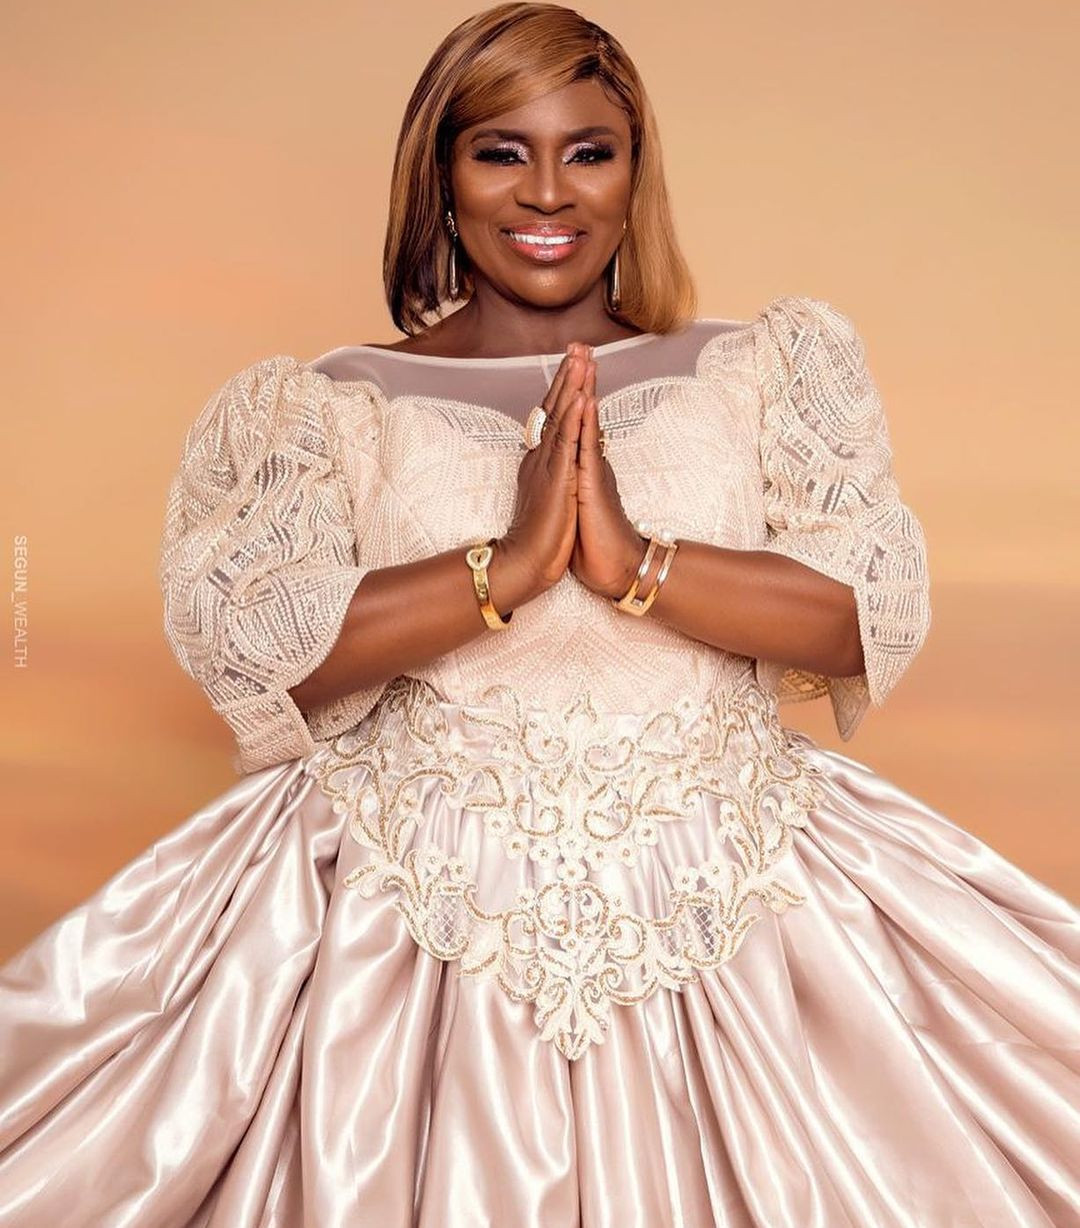 Actress Idowu Philips aka Mama Rainbow shares stunning new photos as she turns 78